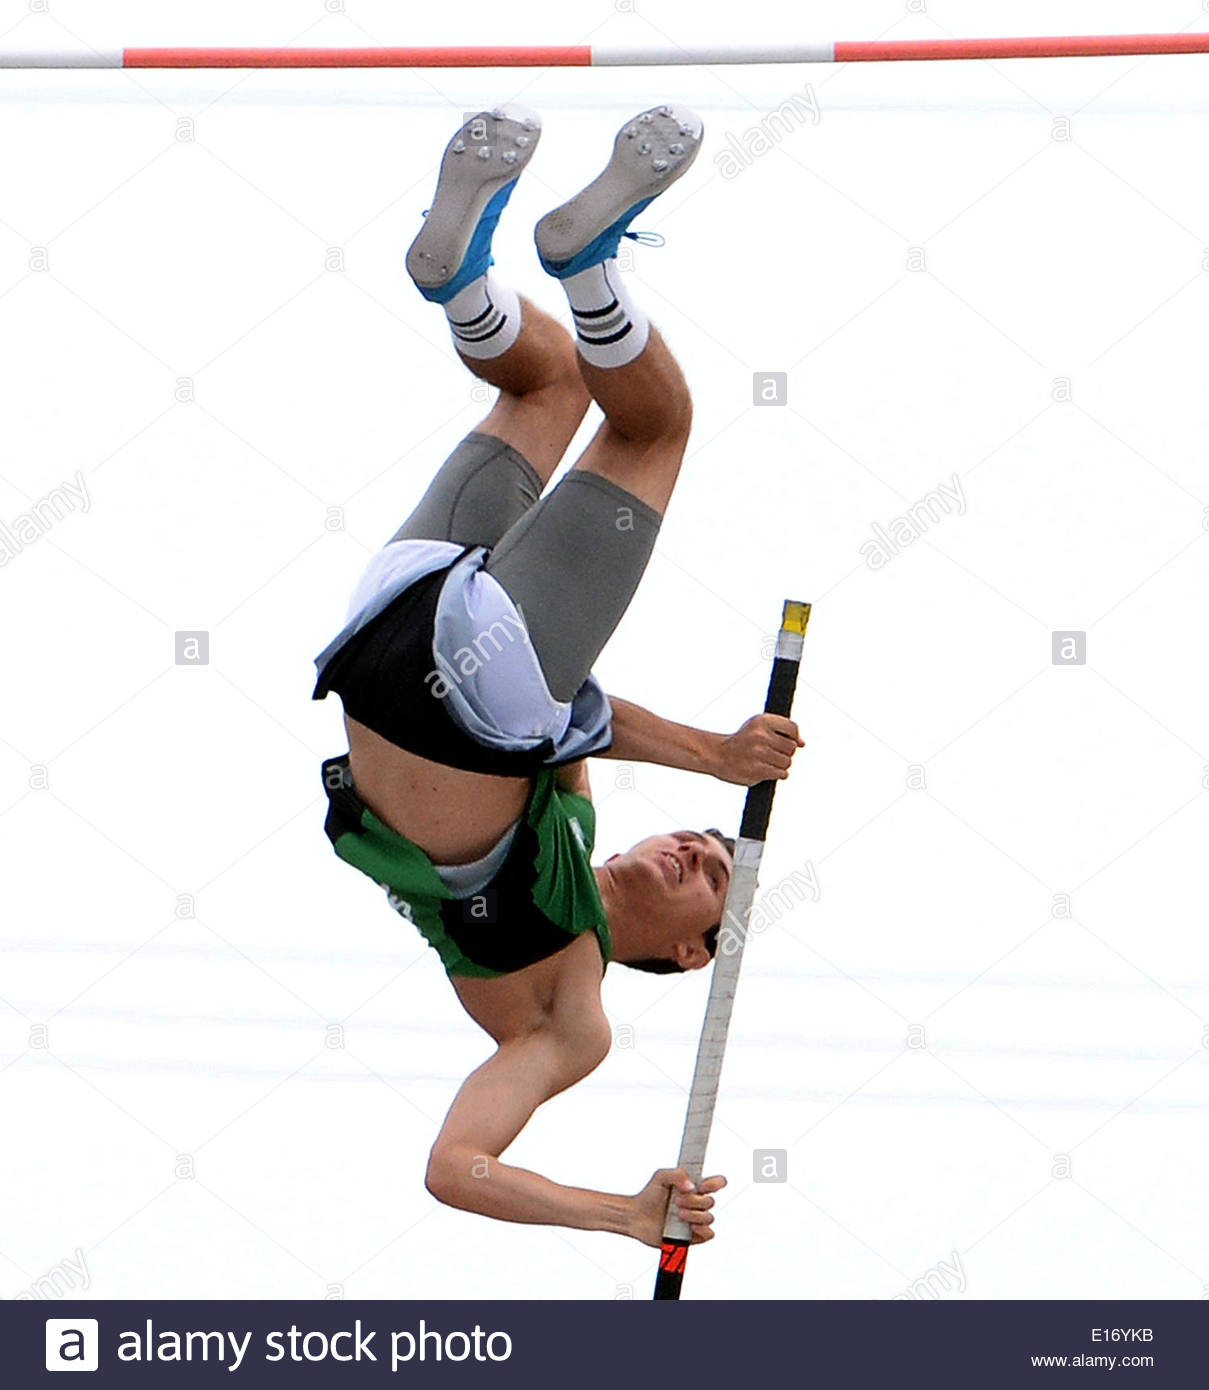 Norwalk, California, USA. 24th May, 2014. Thousand Oak's Luigi Colella jumps at 17-00.75 and wins the division 2 pole vault during the CIF Southern Section track and final Championships at Cerritos College in Norwalk, Calif., on Saturday, May 24, 2014. (Keith Birmingham/Pasadena Star-News) © San Gabriel Valley Tribune/ZUMAPRESS.com/Alamy Live News - Stock Image